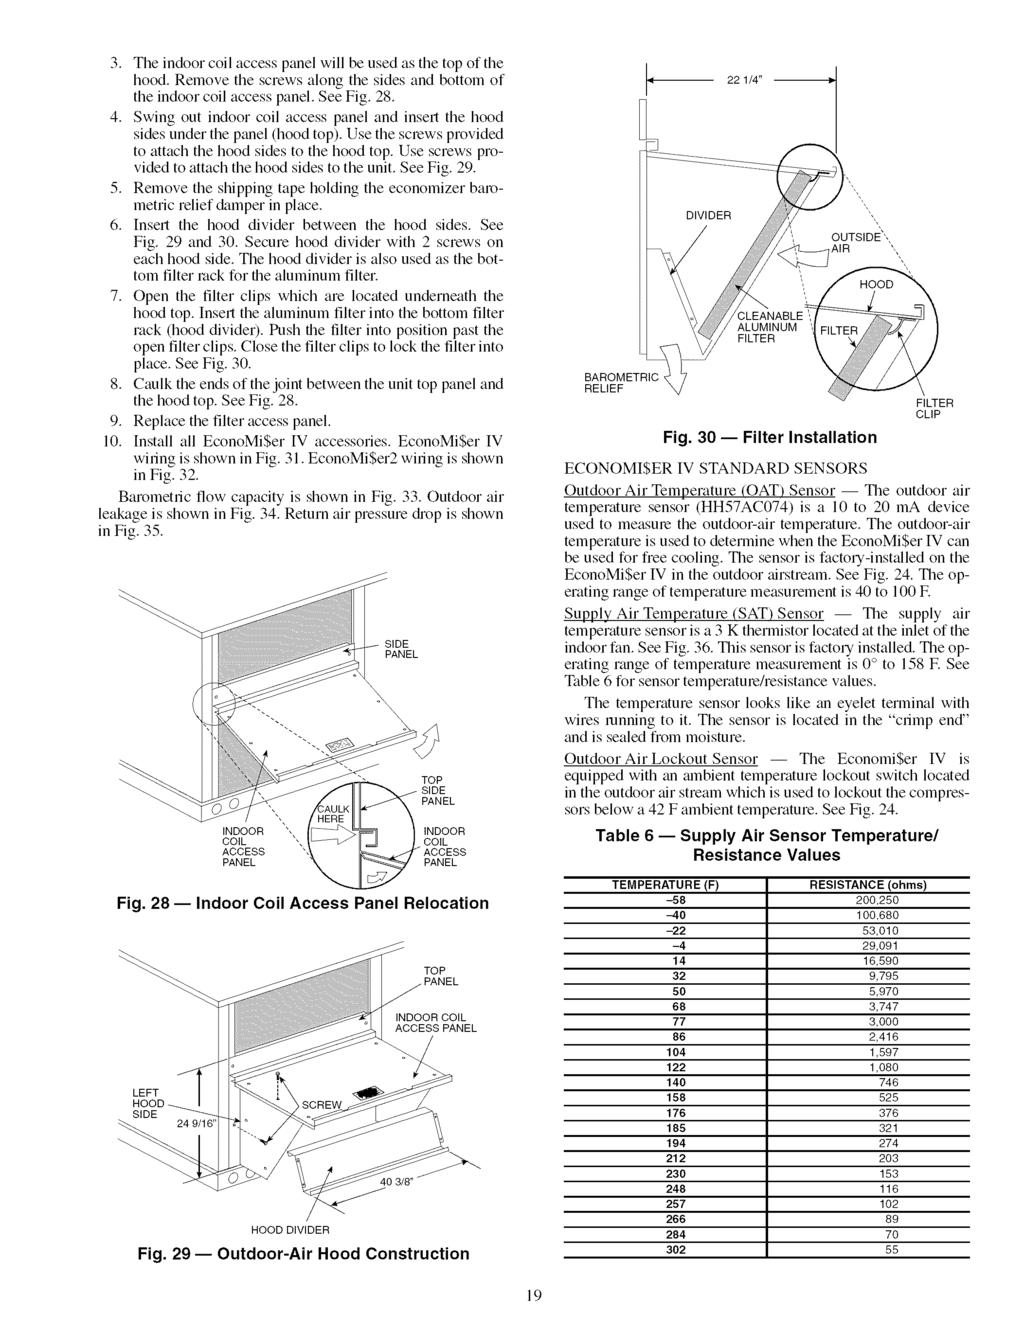 3. The indoor coil access panel will be used as the top of the hood. Remove the screws along the sides and bottom of the indoor coil access panel. See Fig. 28. 4.